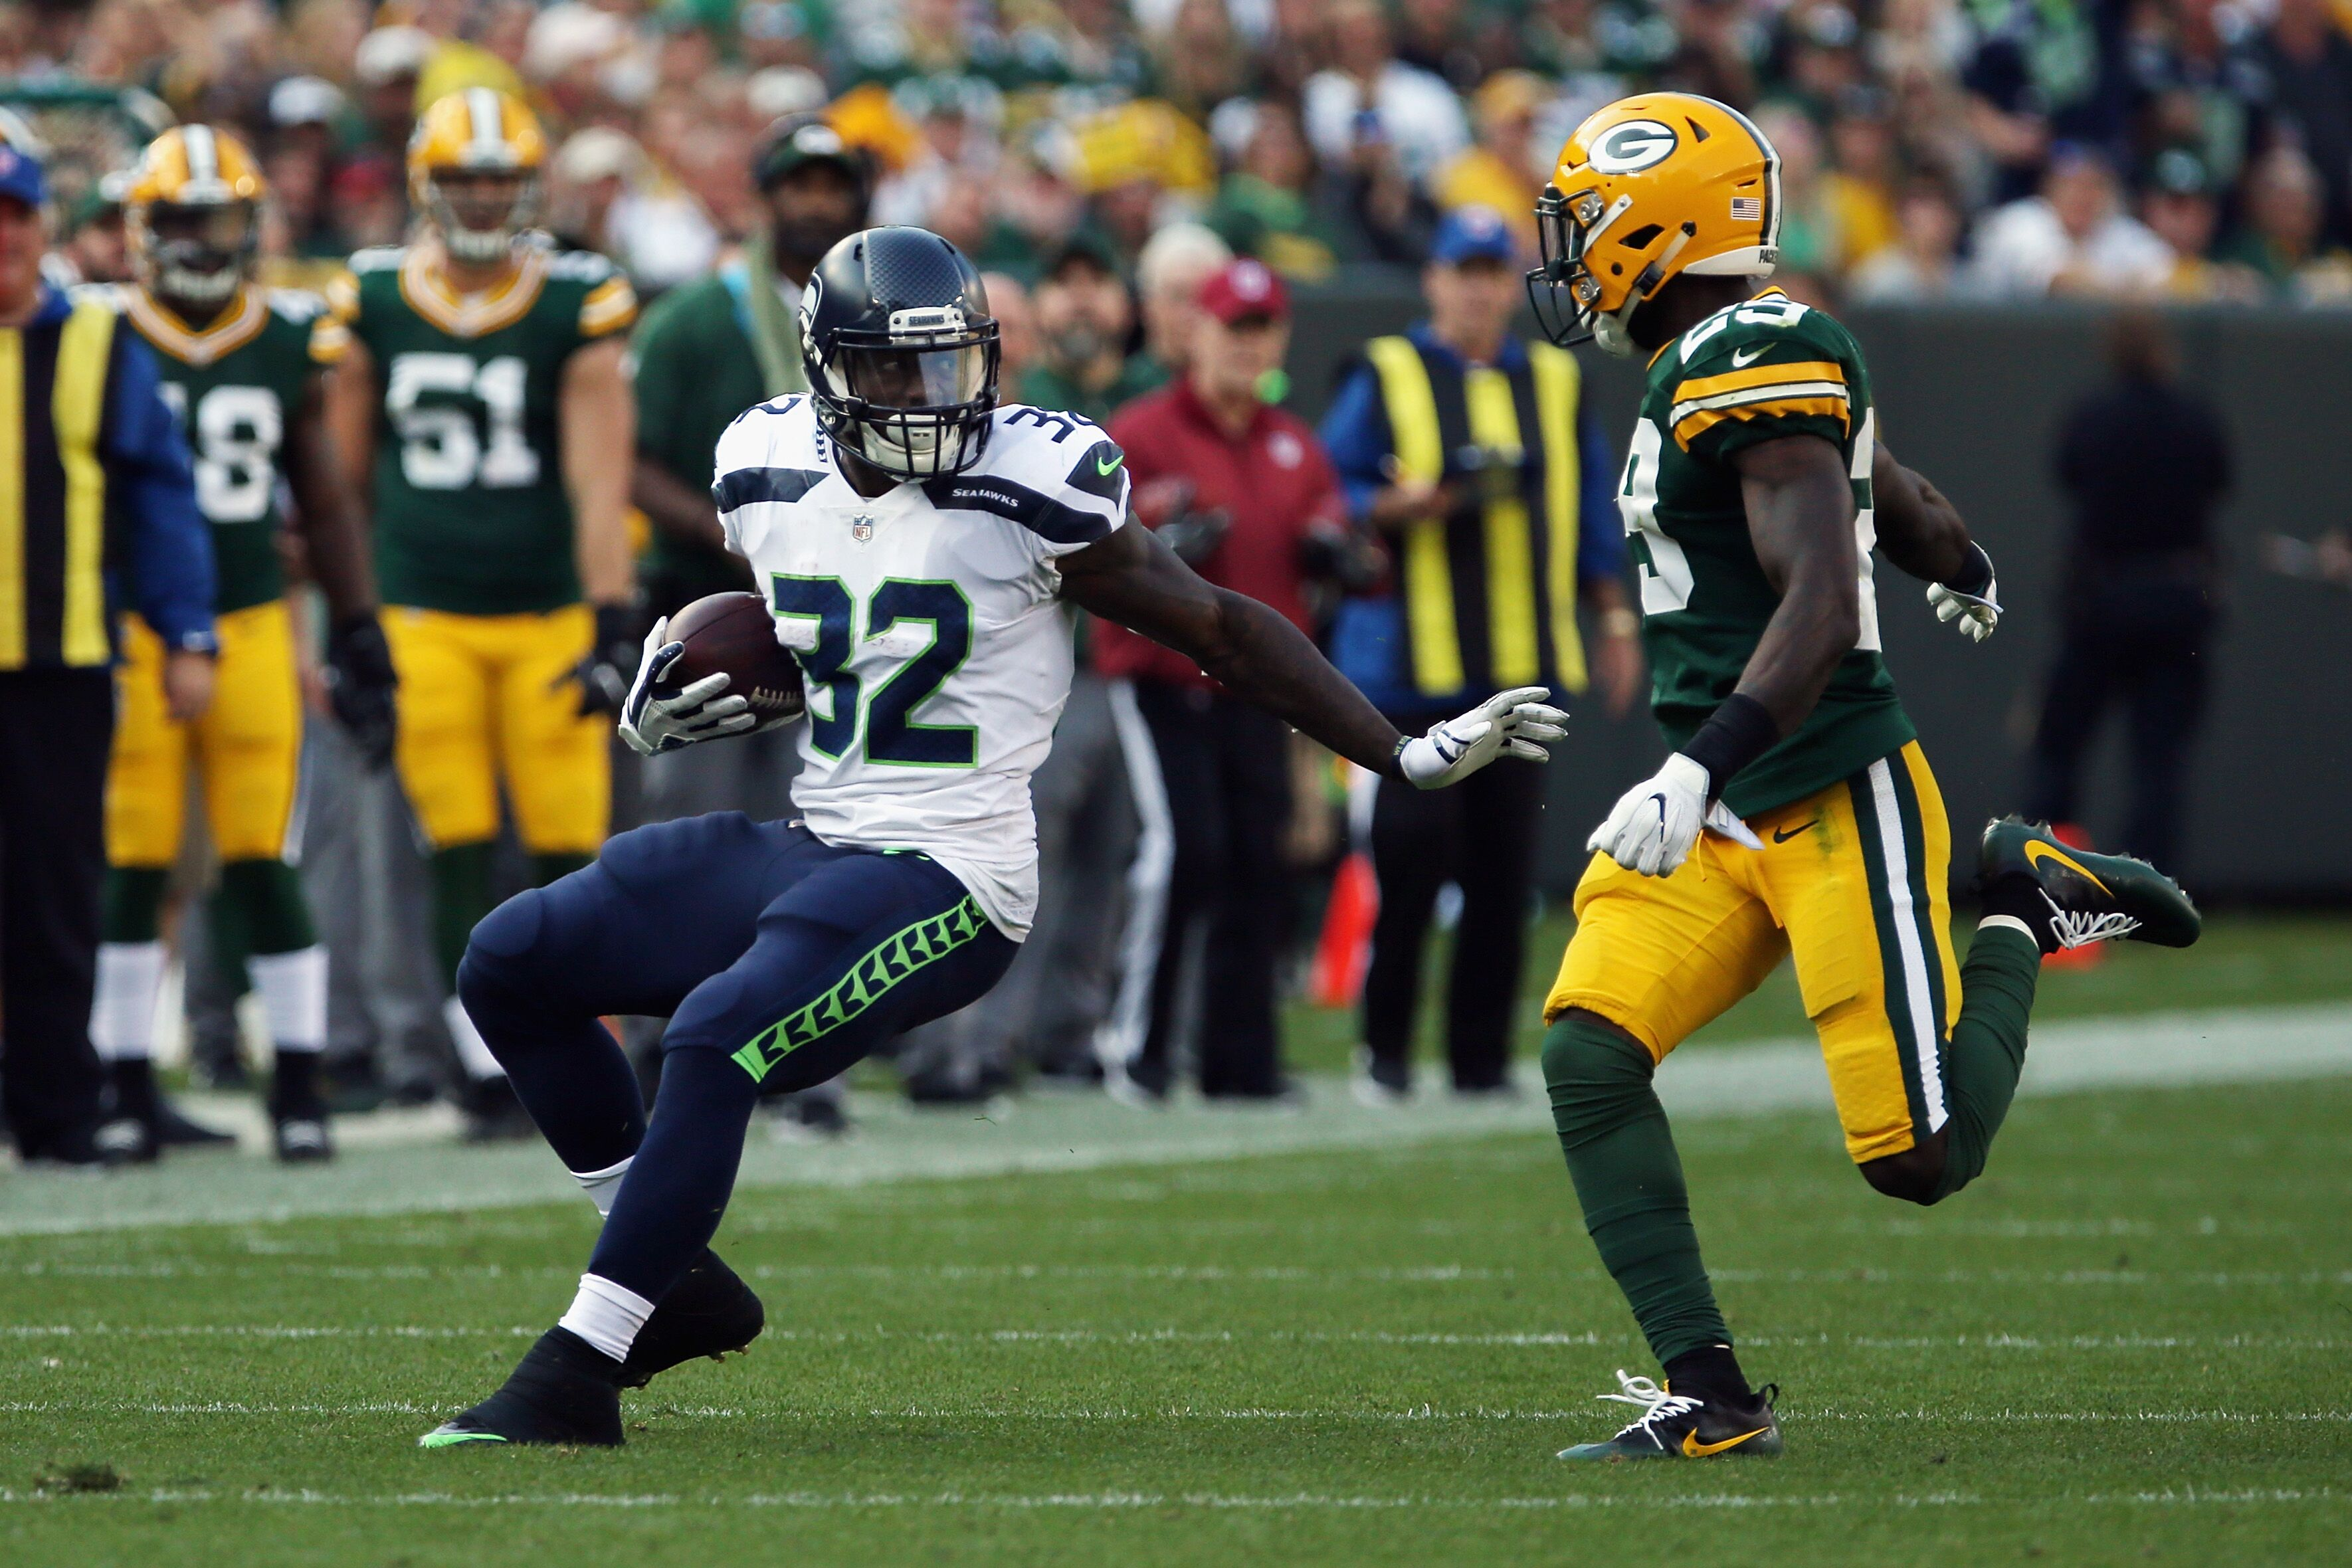 Seahawks vs. Packers: Staff predictions leaning towards a Seattle win